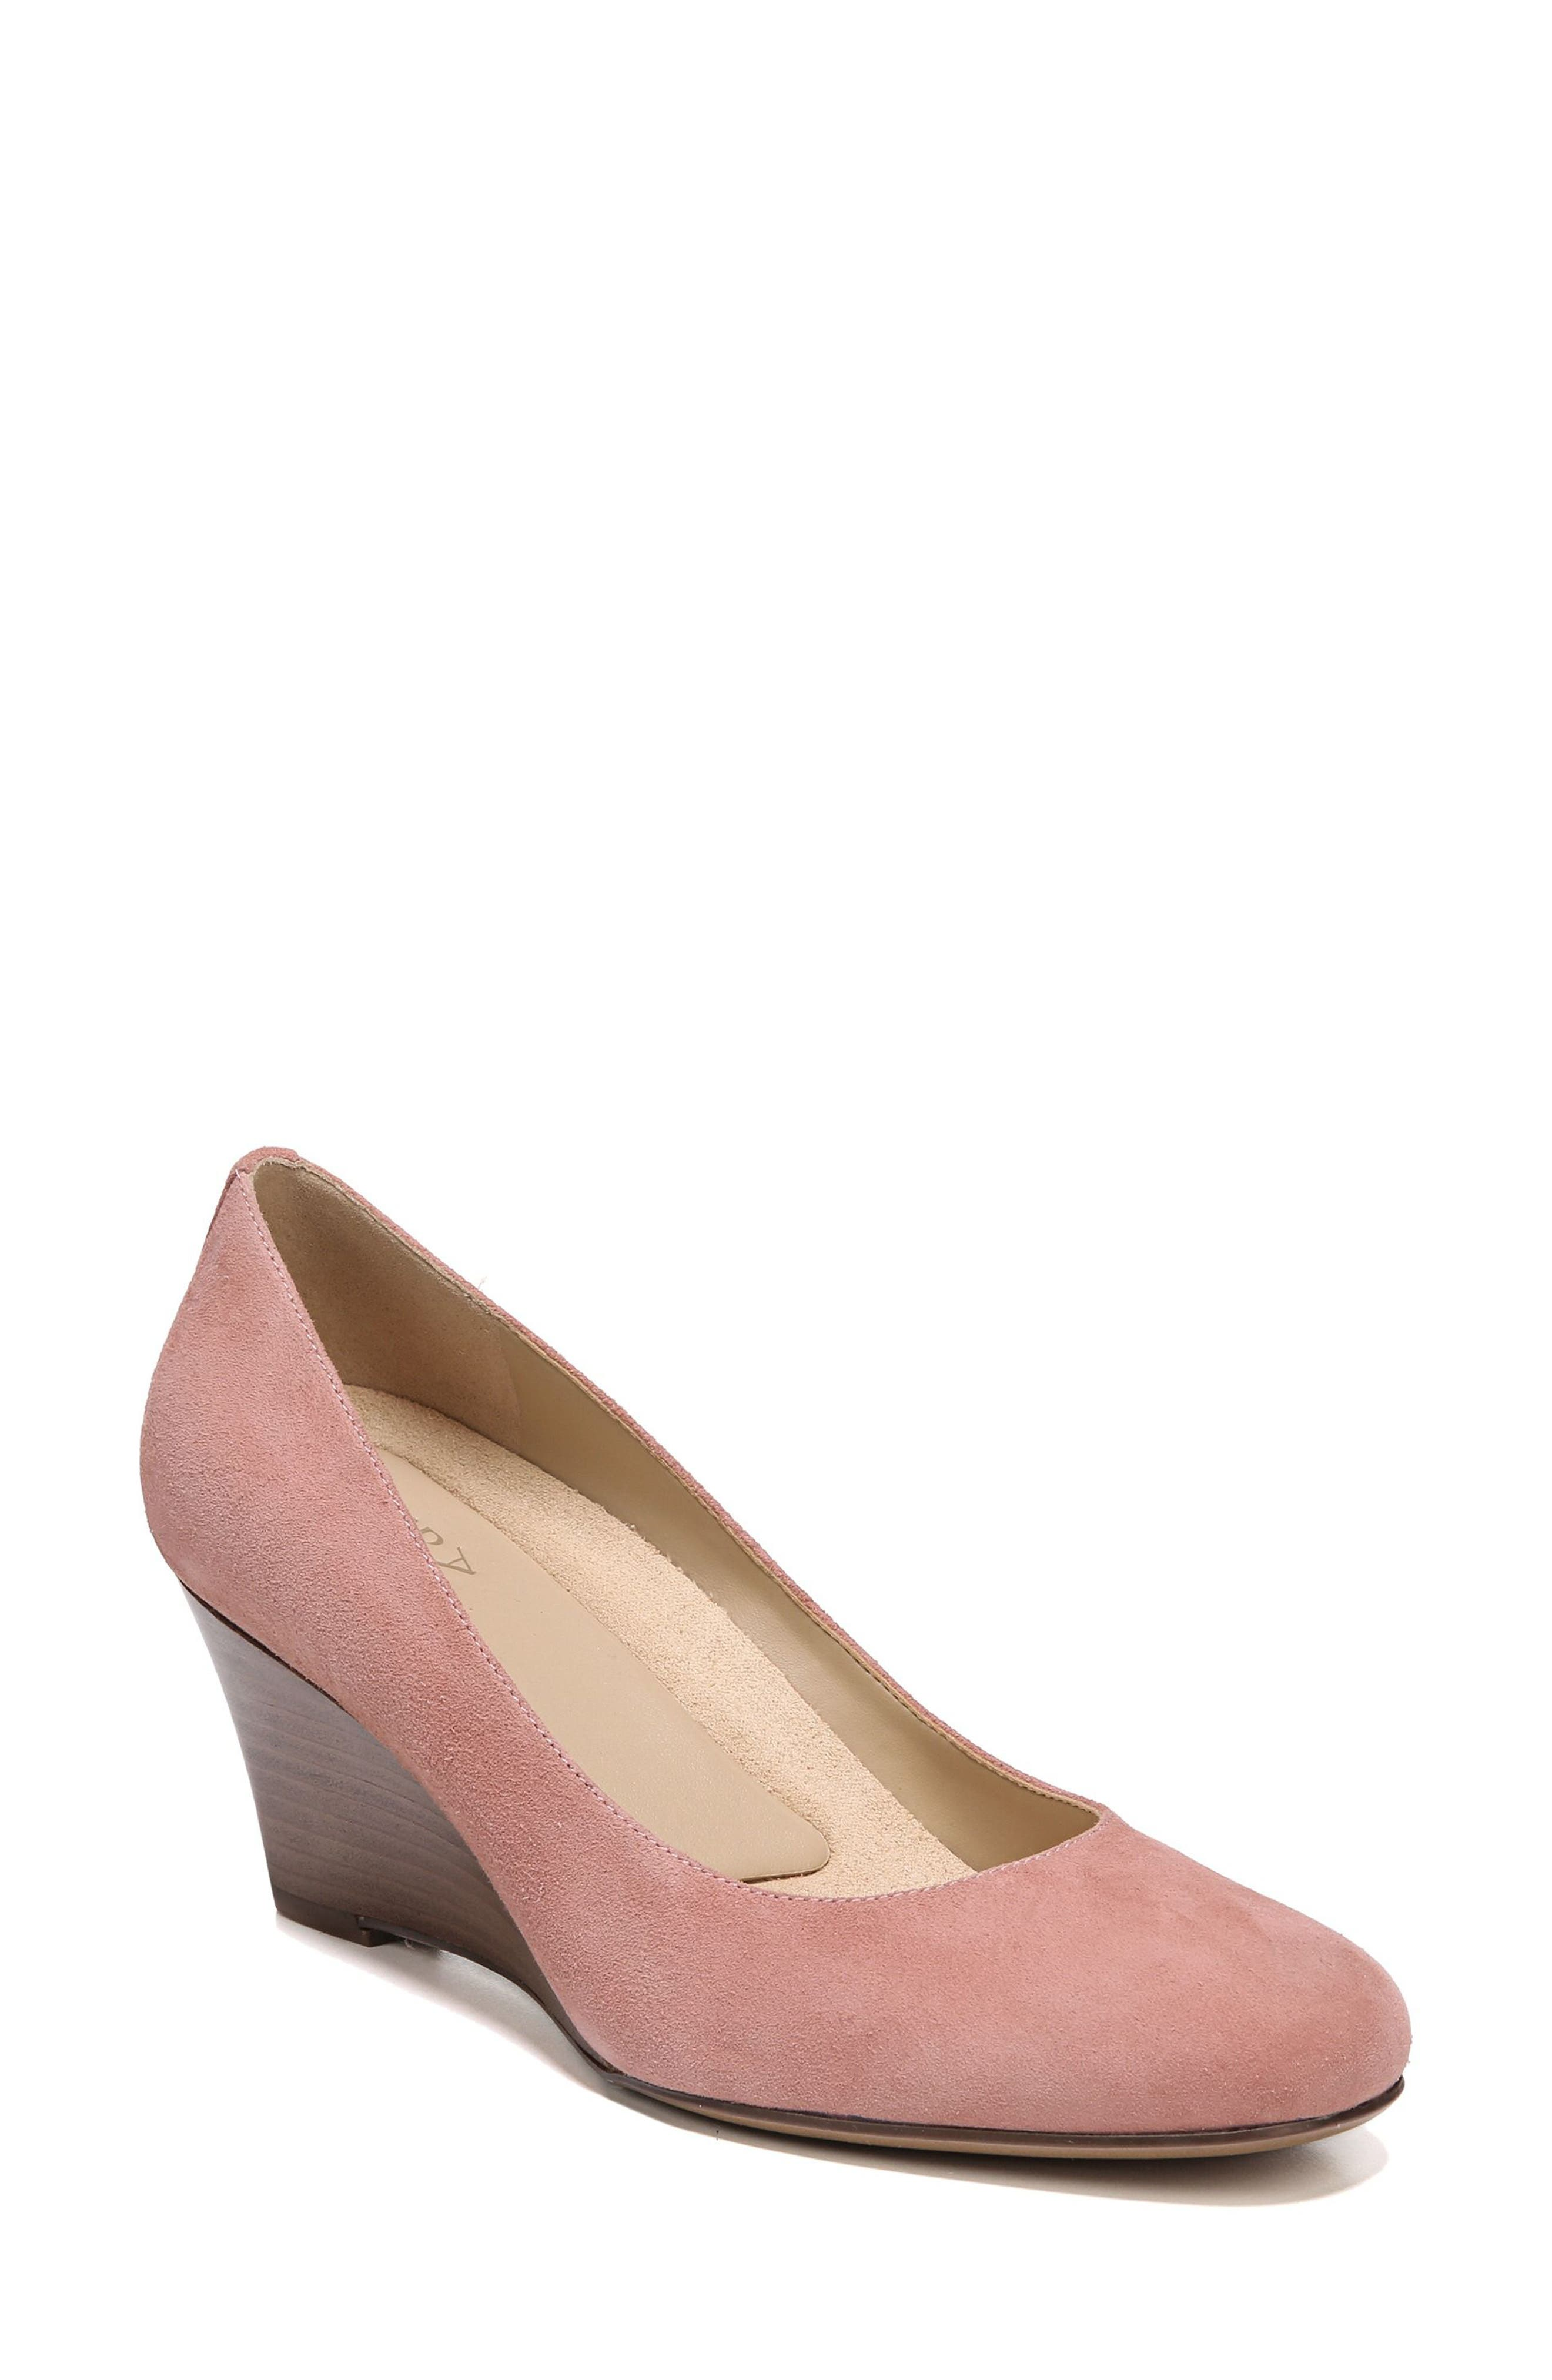 Emily Wedge Pump,                             Main thumbnail 1, color,                             Peony Pink Suede